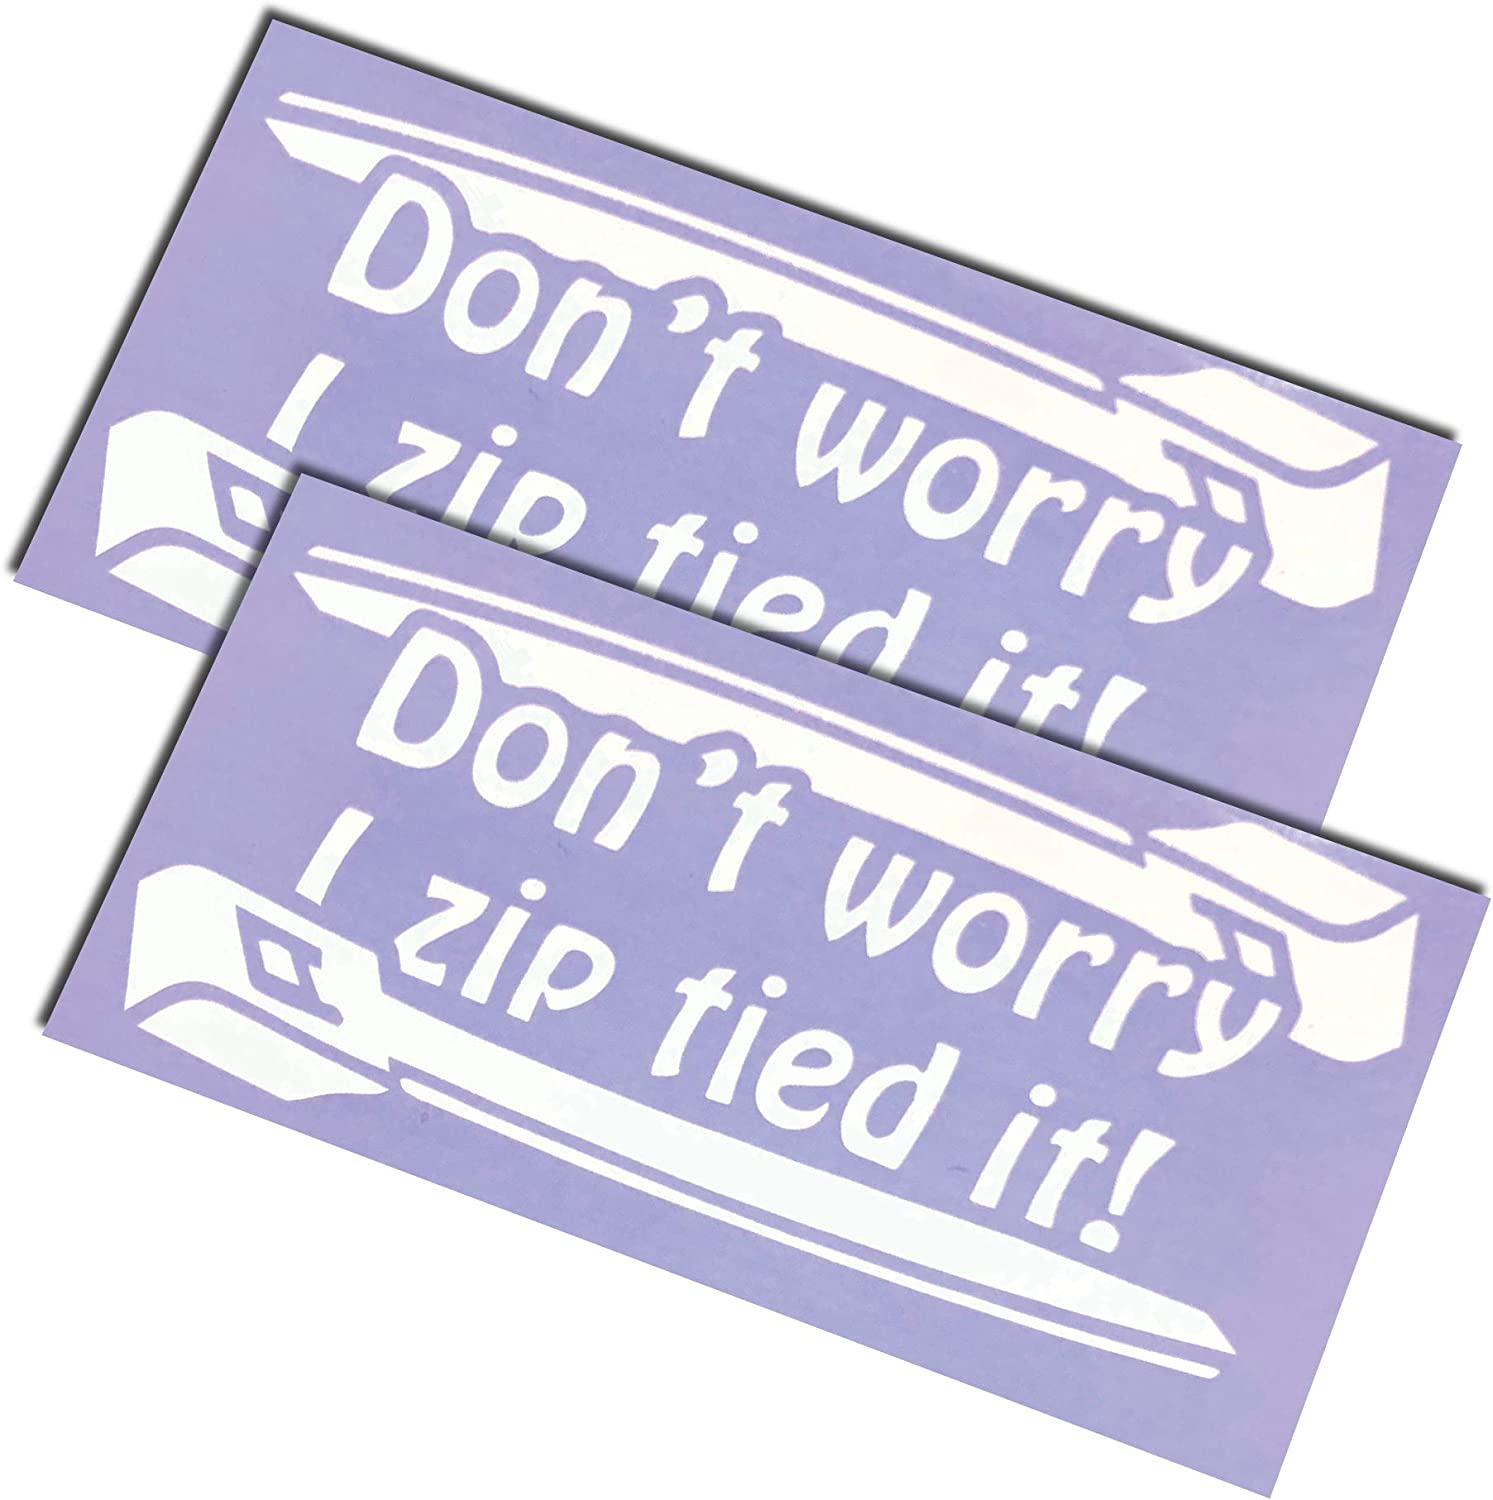 Dont Worry I Zip Tied It Decals//Stickers 3x6 2 Pack